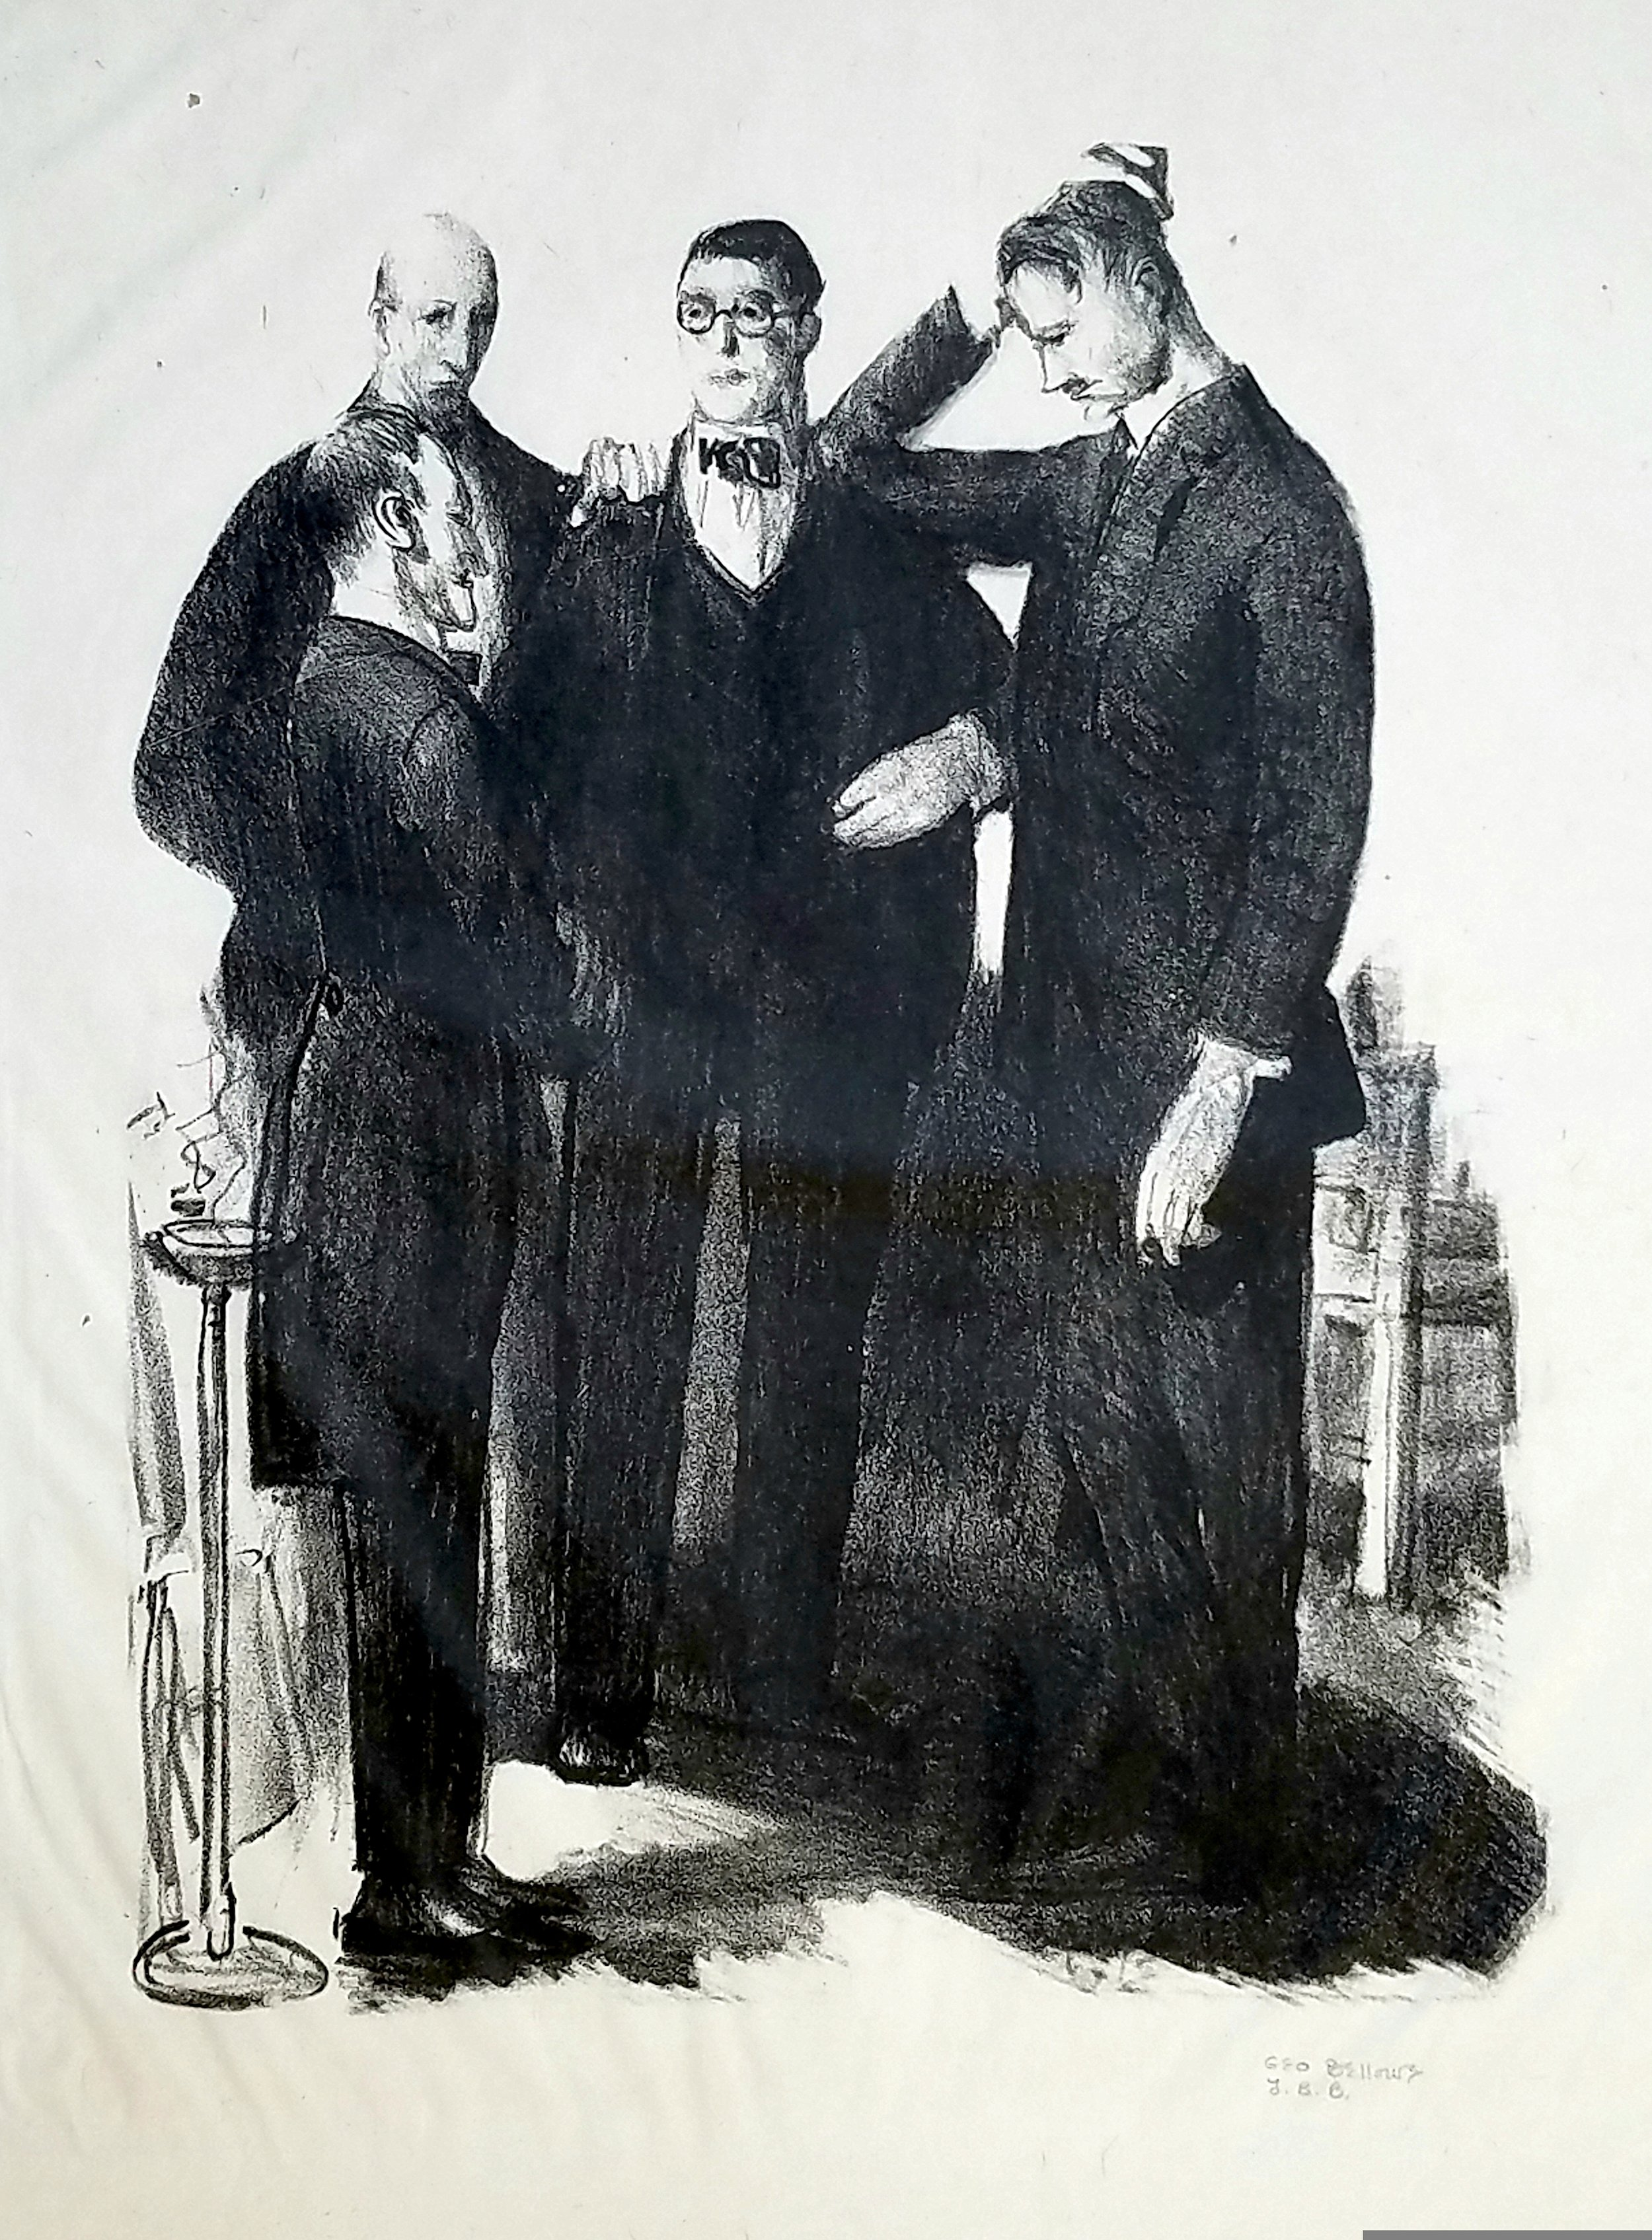 George Bellows,  Four Friends,  1921, lithograph, 10 1/4 x 8 in. The Historic Woodstock Arts Colony: Arthur A. Anderson Collection. Photo Credit: Eric R. Lapp